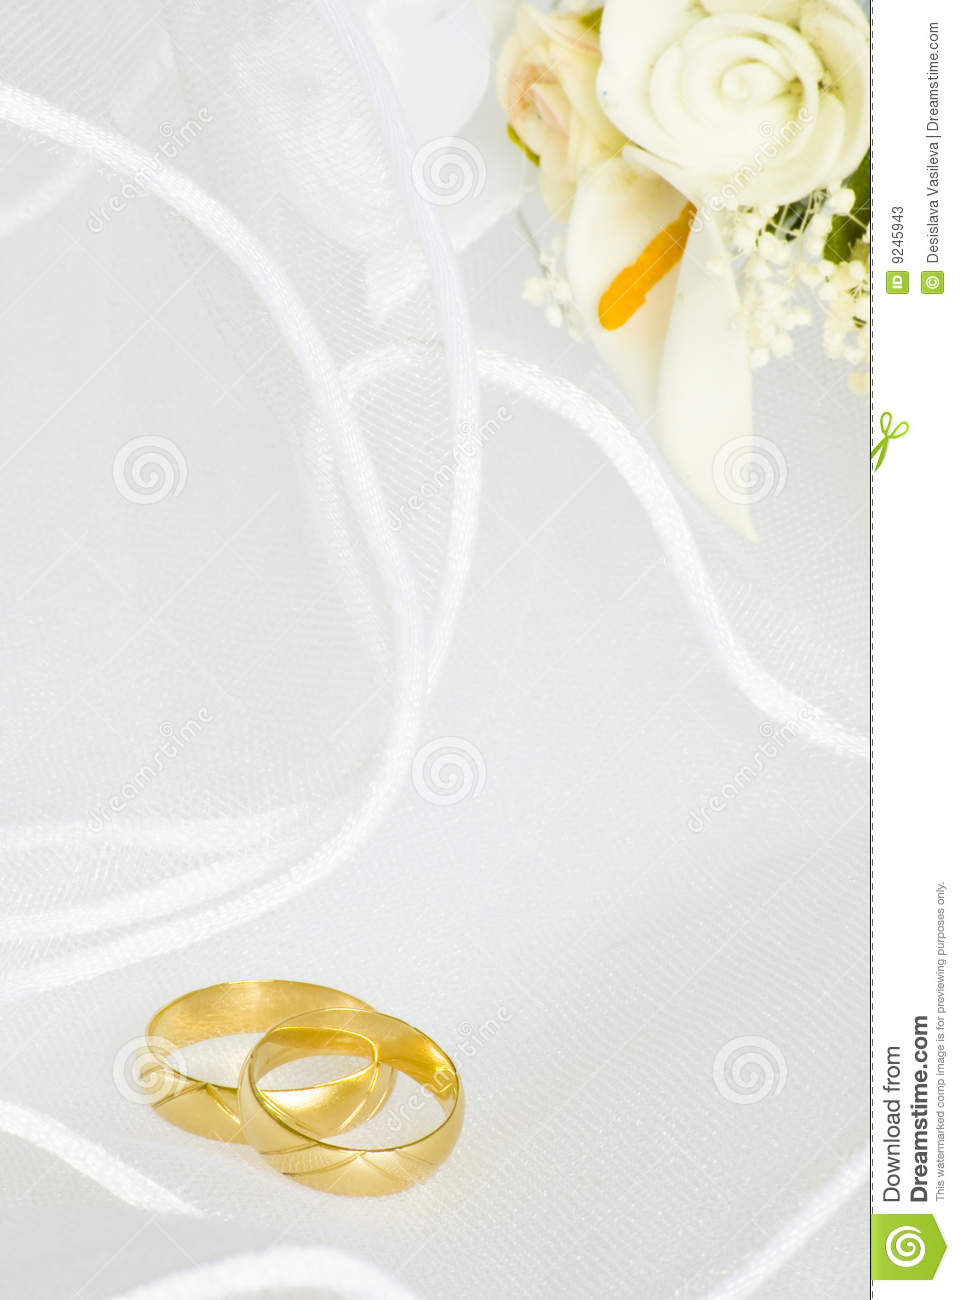 Ring Ceremony Hd Wallpaper Wedding Invitation Rings And Flowers Over Veil Stock